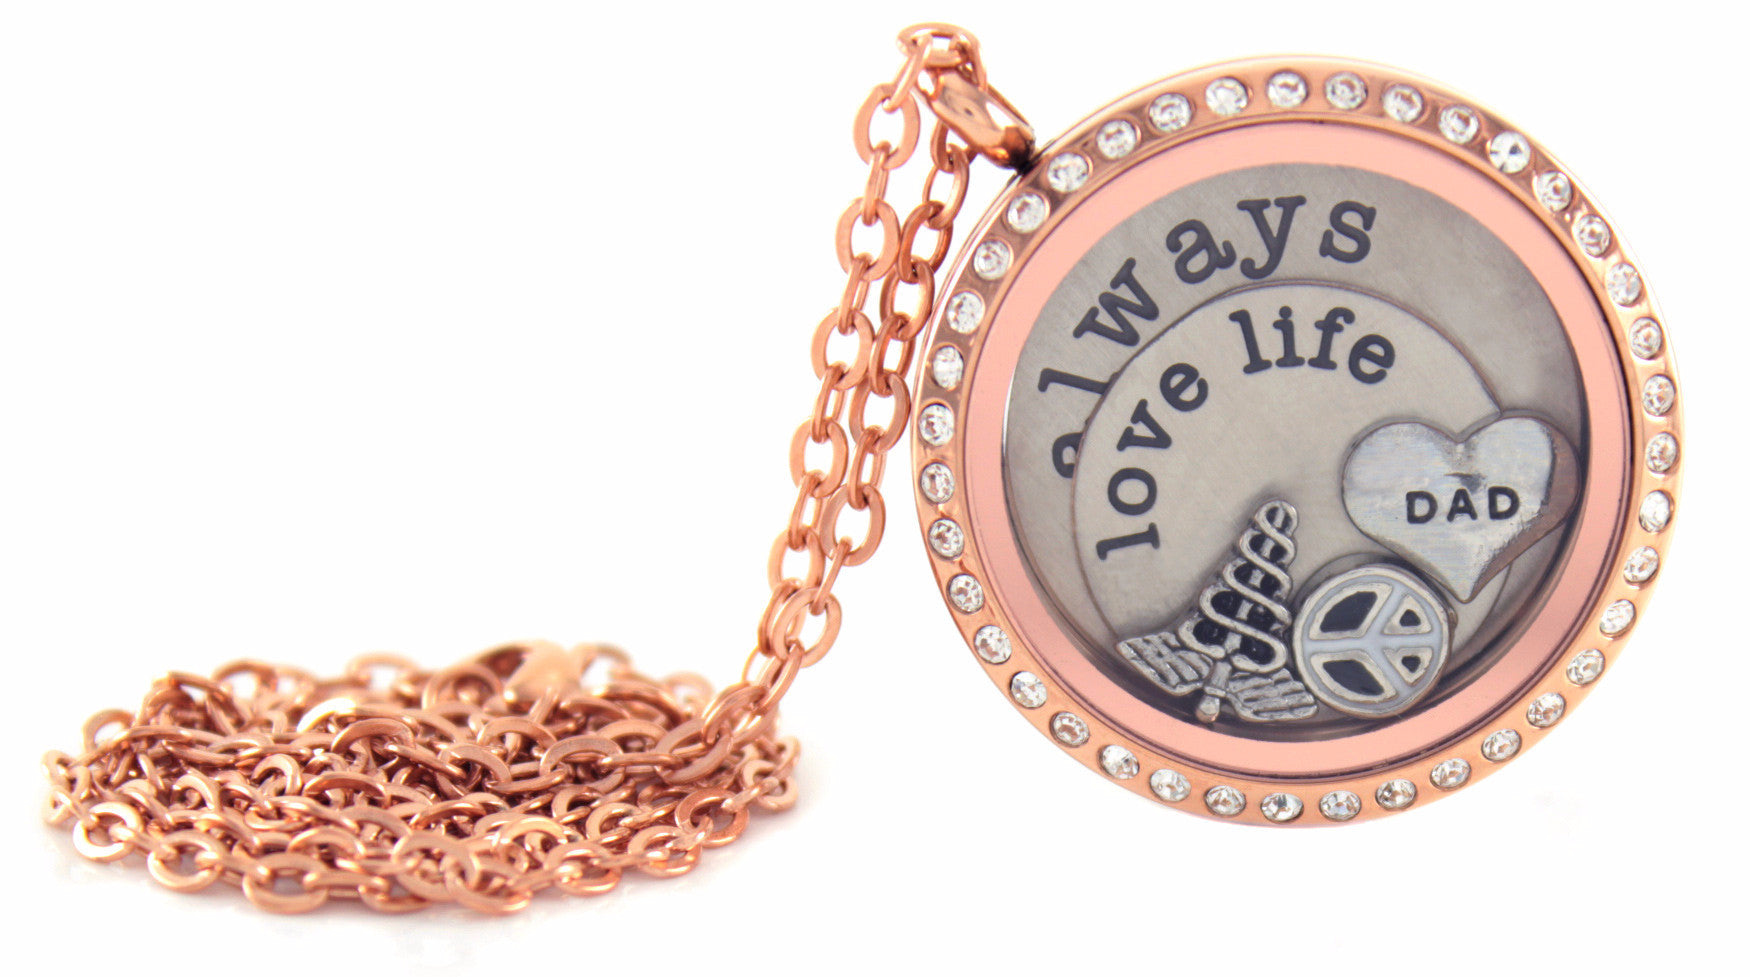 Stainless Steel Floating Locket Necklace with 6 Charms and 1 Plate (Rose Gold Rhinestone Circle)